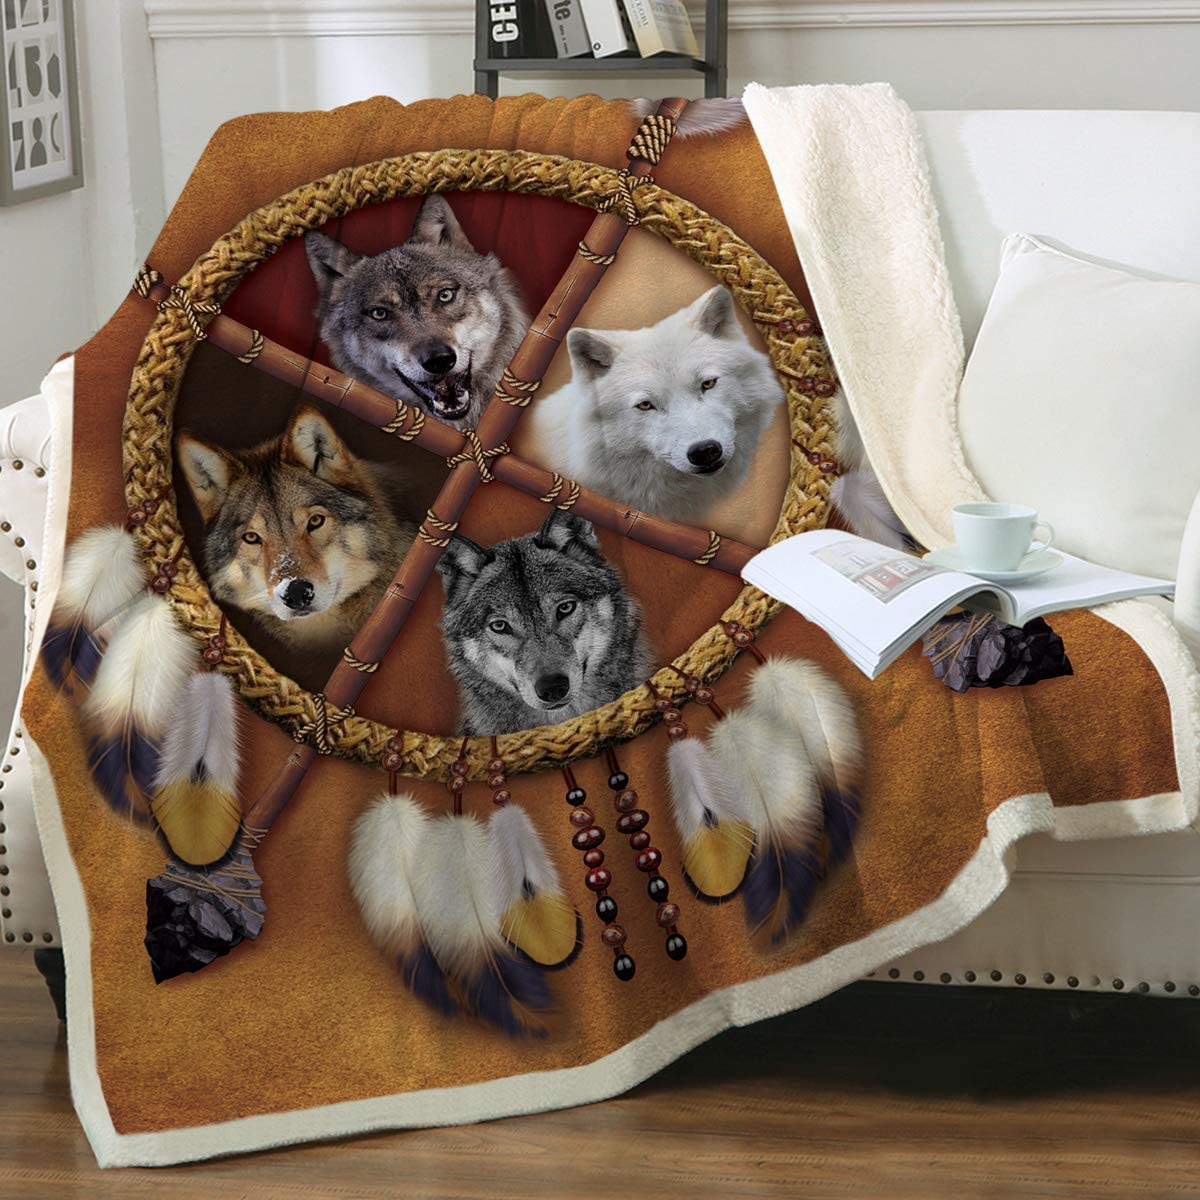 "Sleepwish Wolf Dream Catcher Blanket 4 Wolves Dreamcatcher Fleece Blanket Sherpa Blankets Blanket (Twin 60""x80"")"